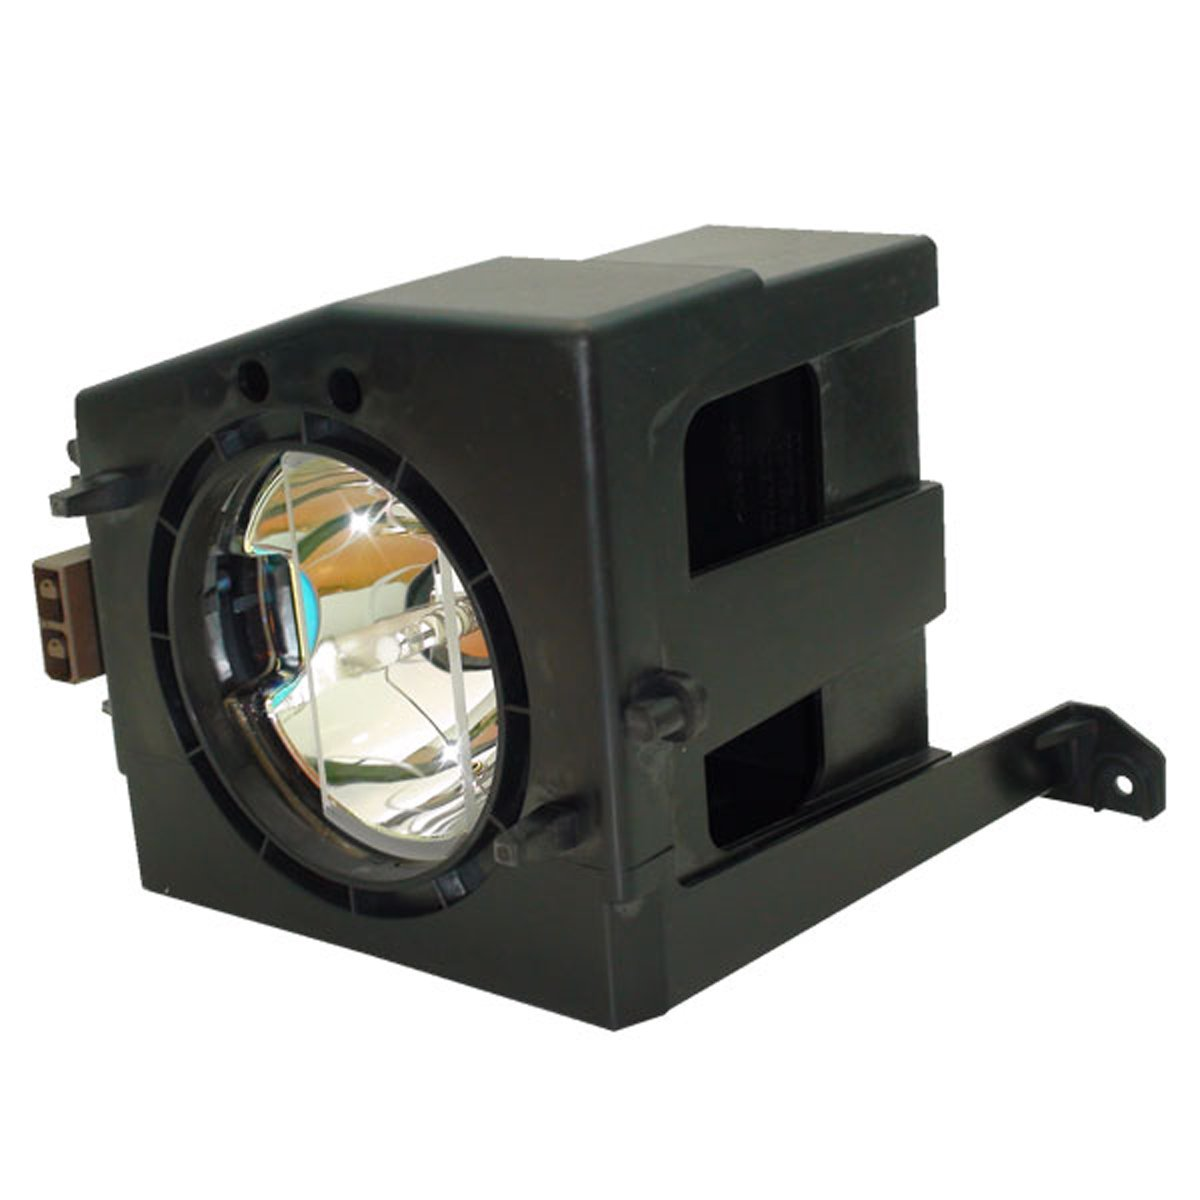 AuraBeam Economy Rear Projection TV Replacement Lamp, for Toshiba 62HM-84, with Housing by Aurabeam